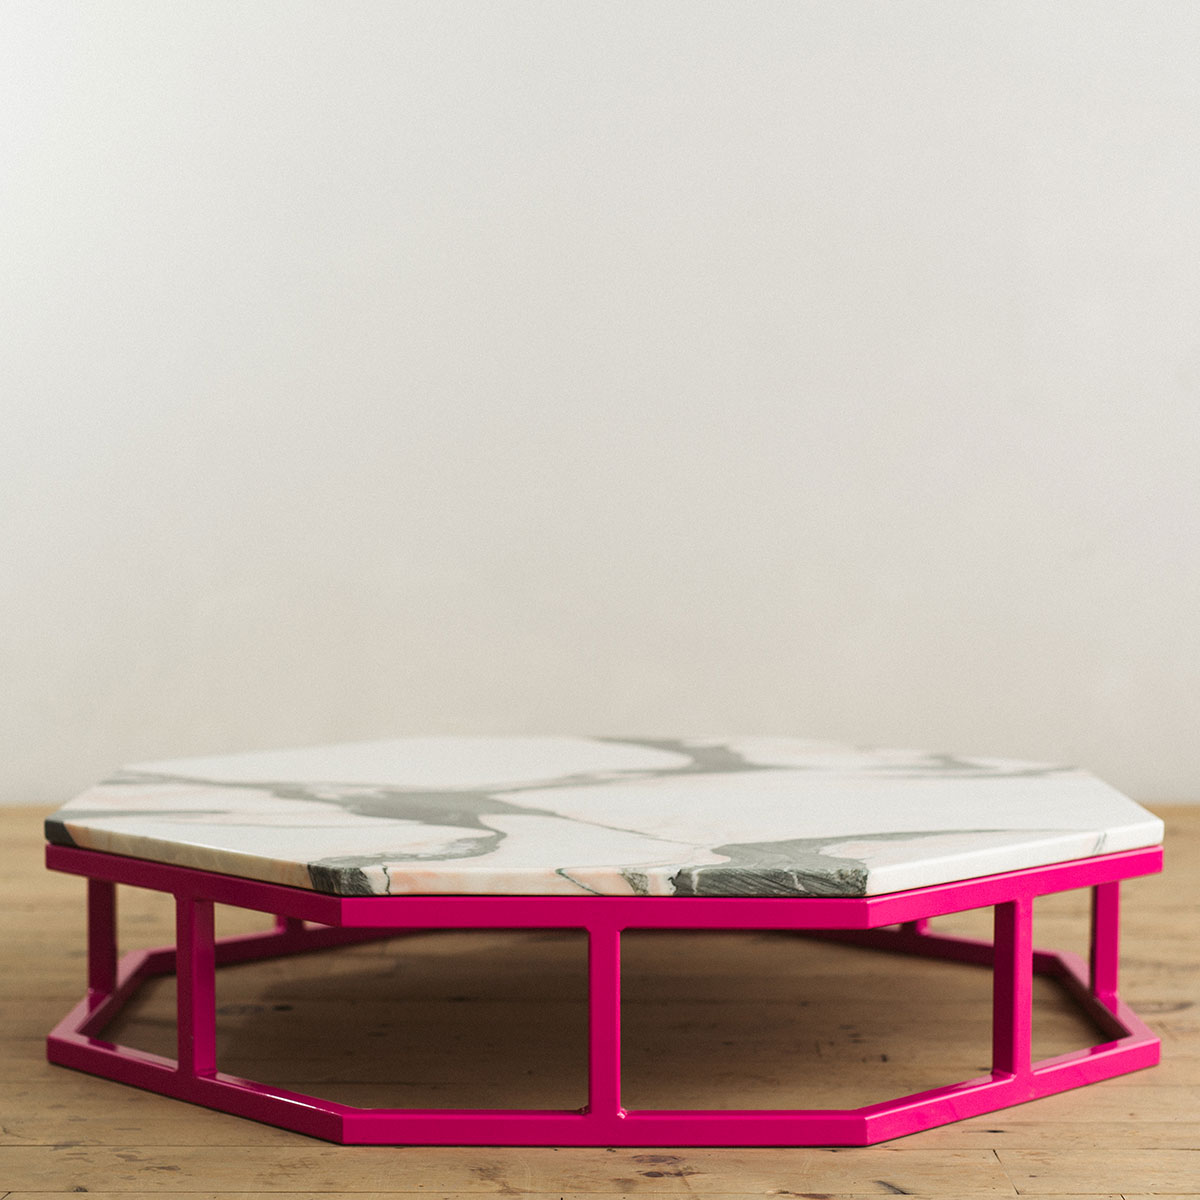 octagon-steel-marble-coffee-table-pink-2